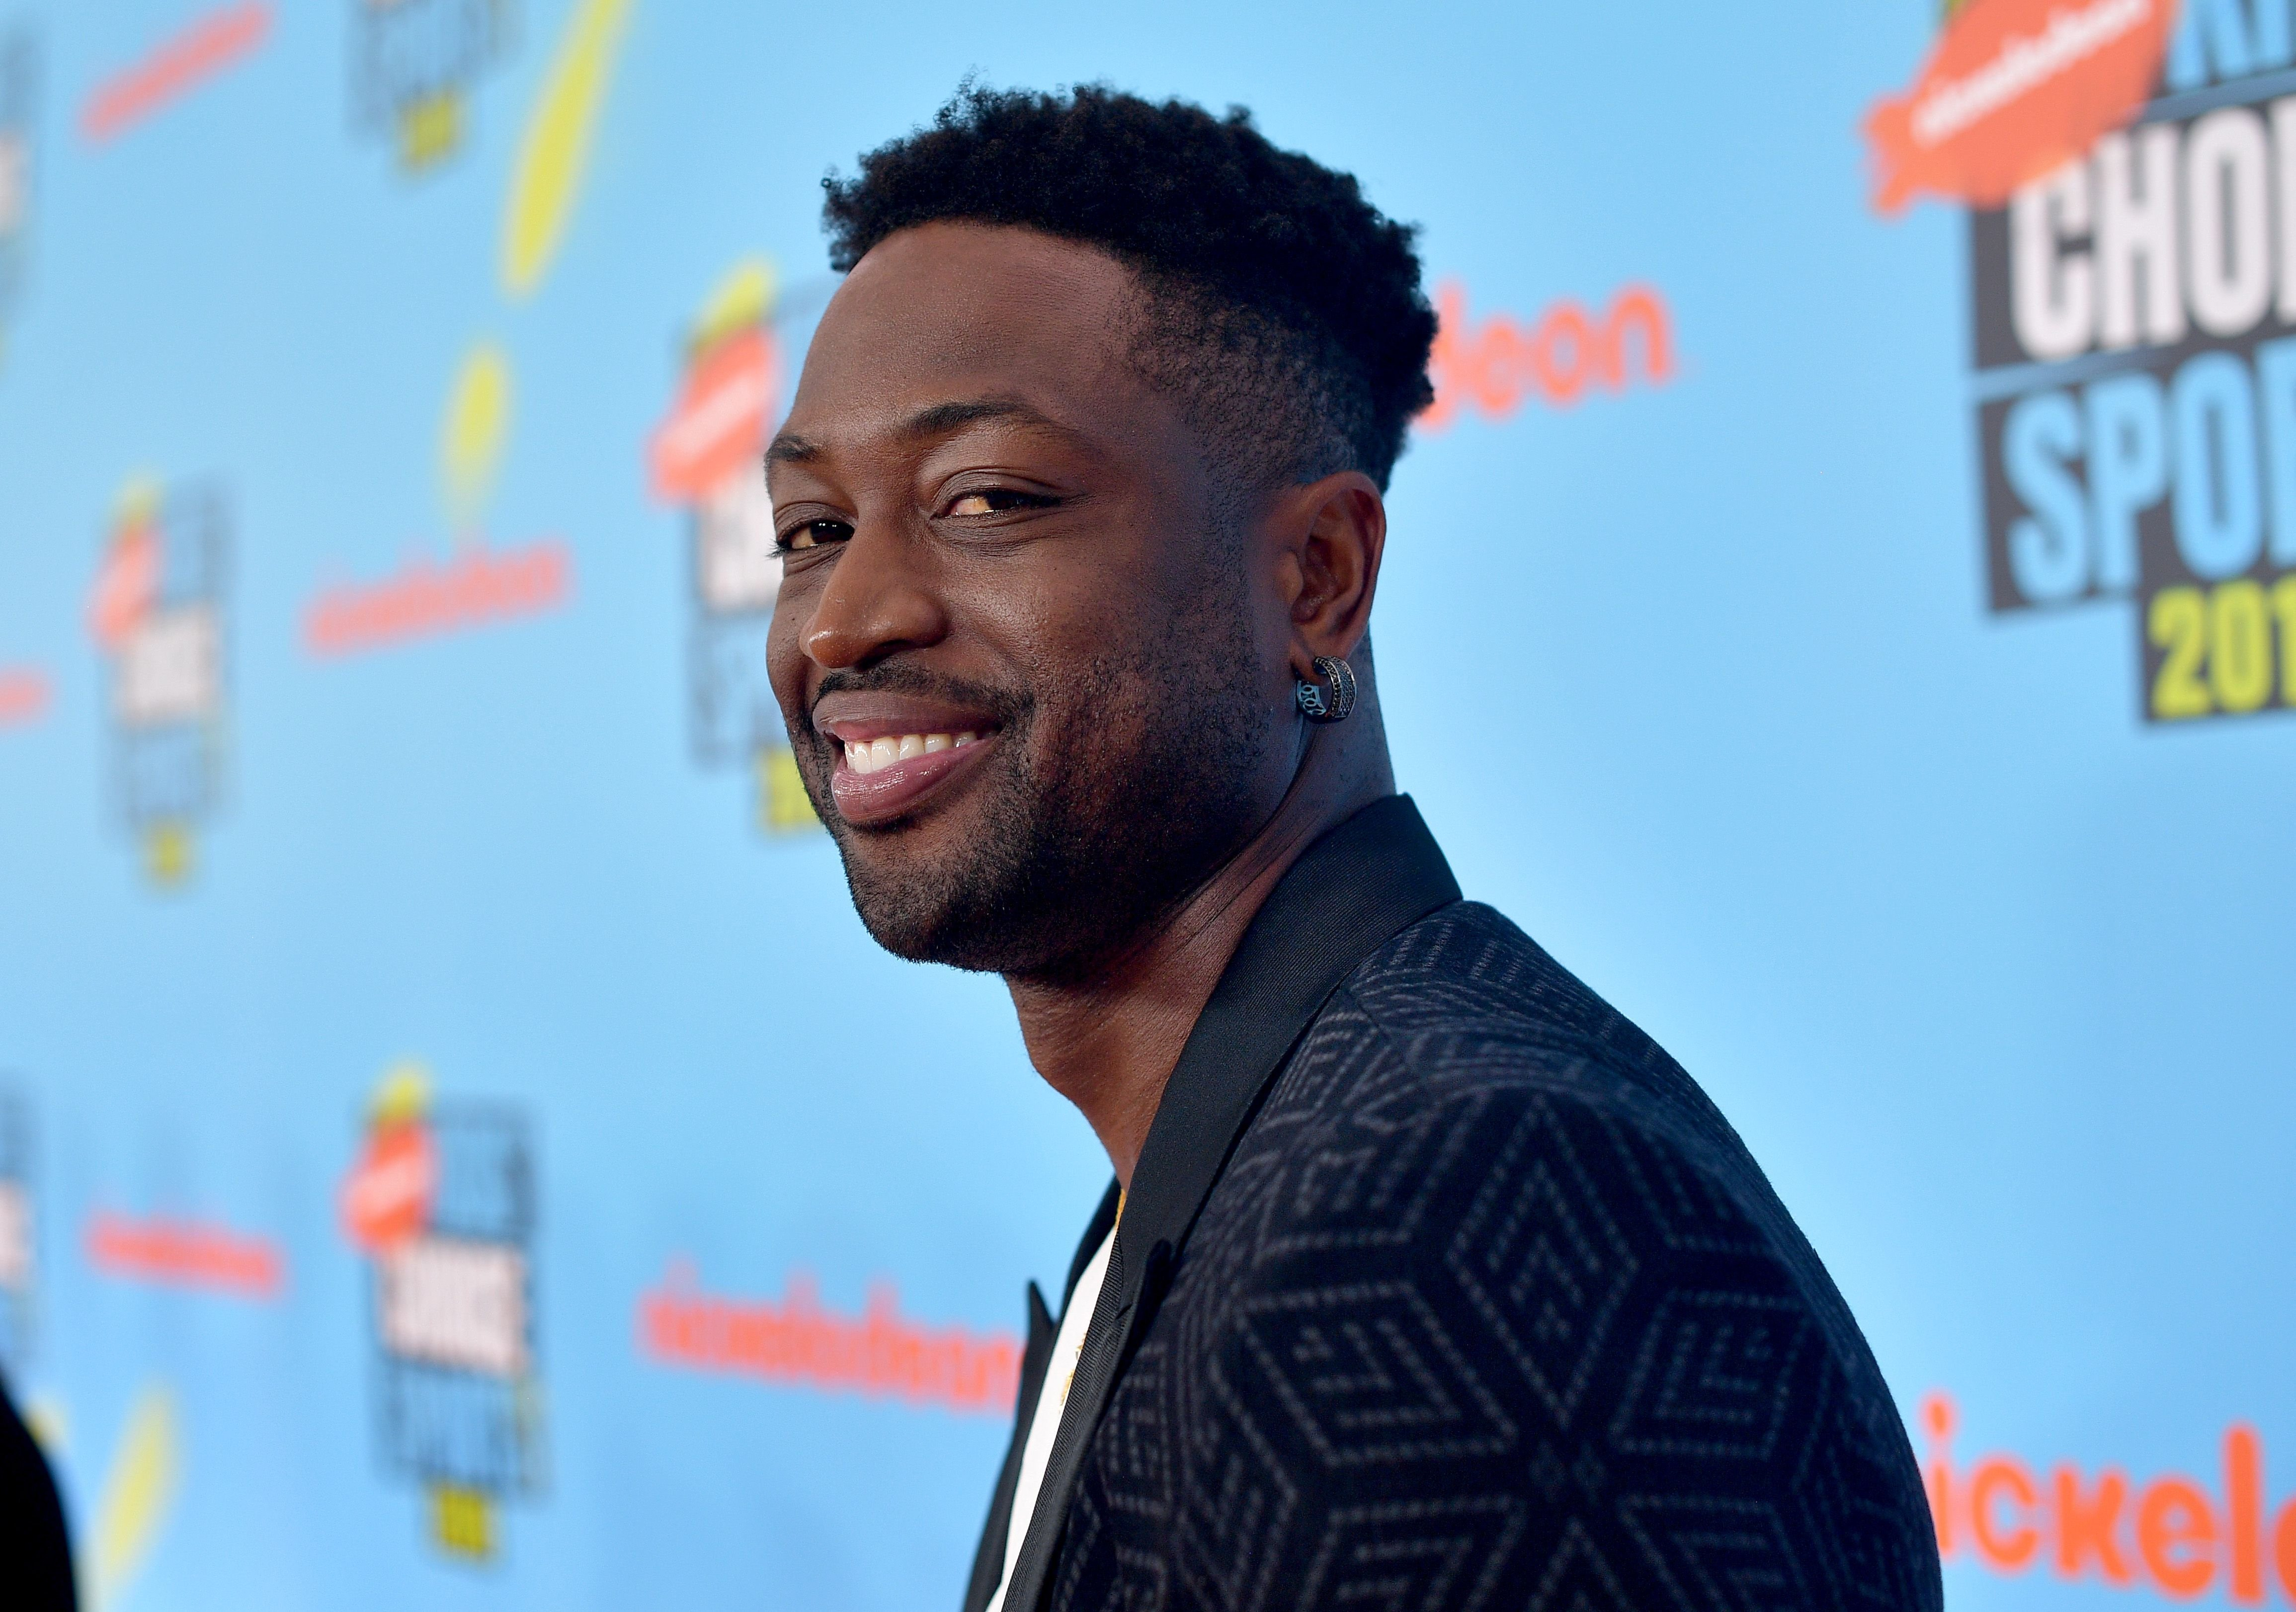 Dwyane Wade during the Nickelodeon Kids' Choice Sports 2019 at Barker Hangar on July 11, 2019 in Santa Monica, California.   Source: Getty Images